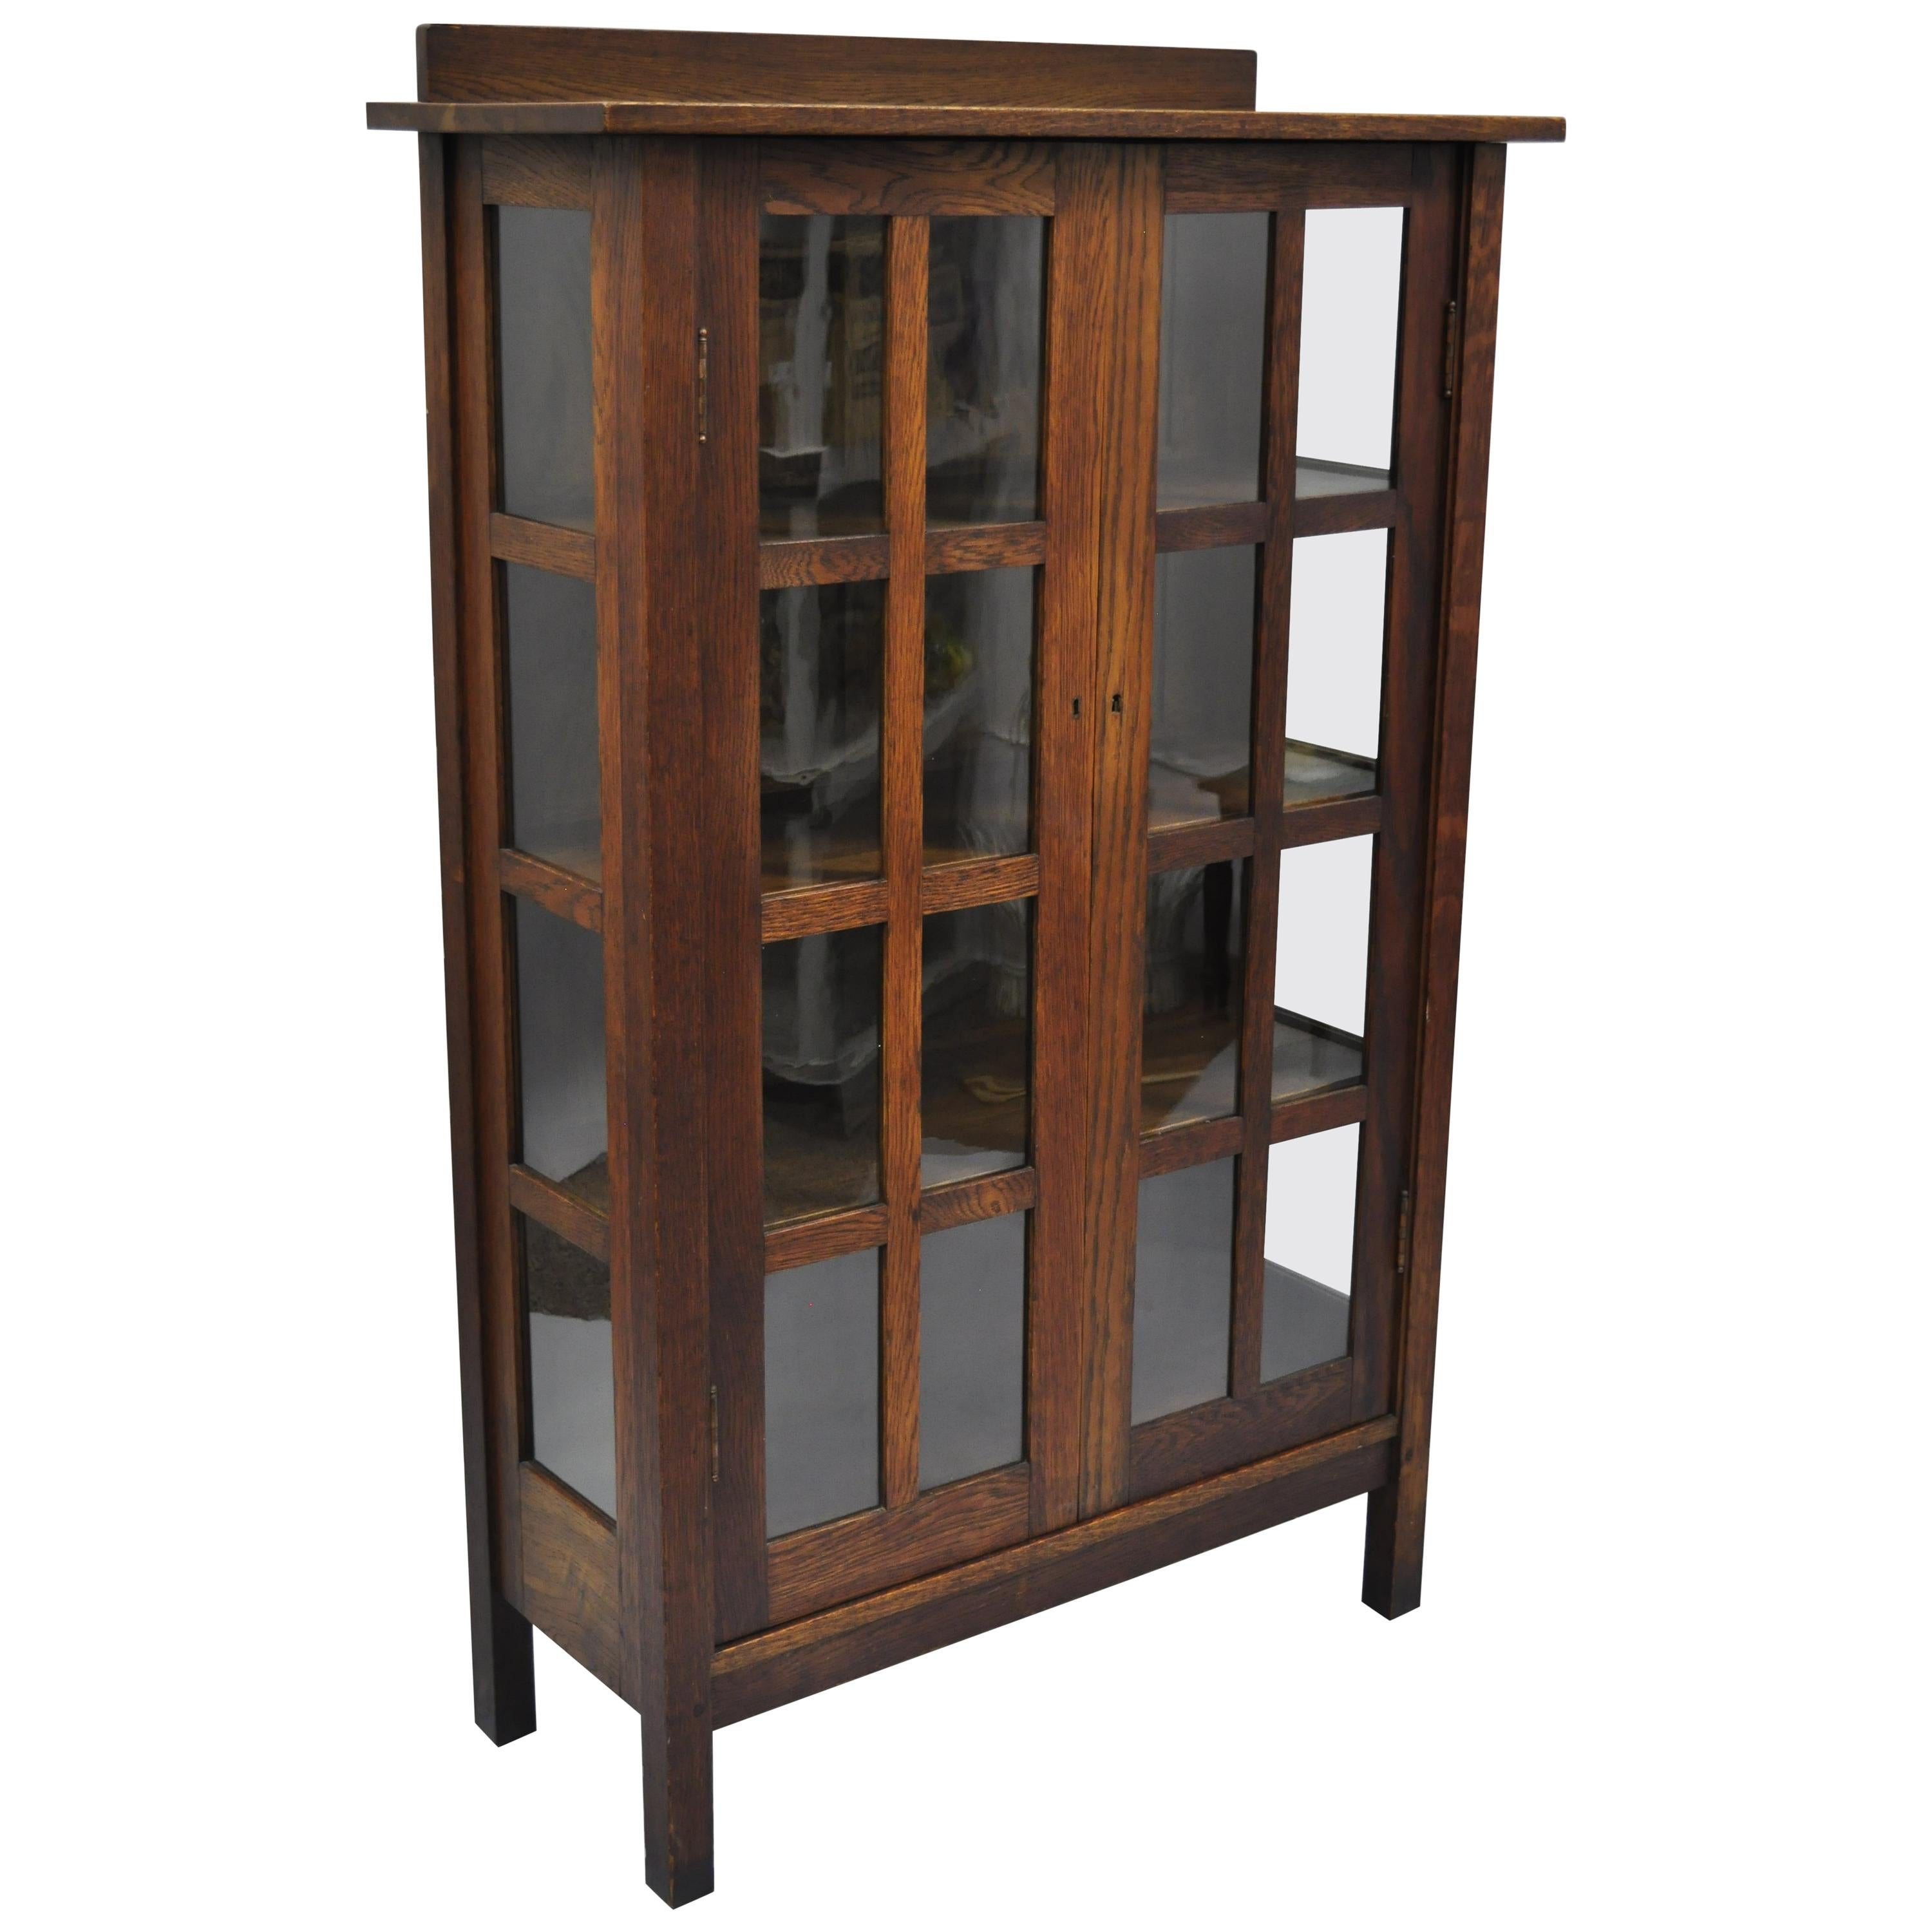 Bookcase Cabinet Gustav Stickley Mission Arts Crafts Oak Glass Door China Cabinet Curio Bookcase